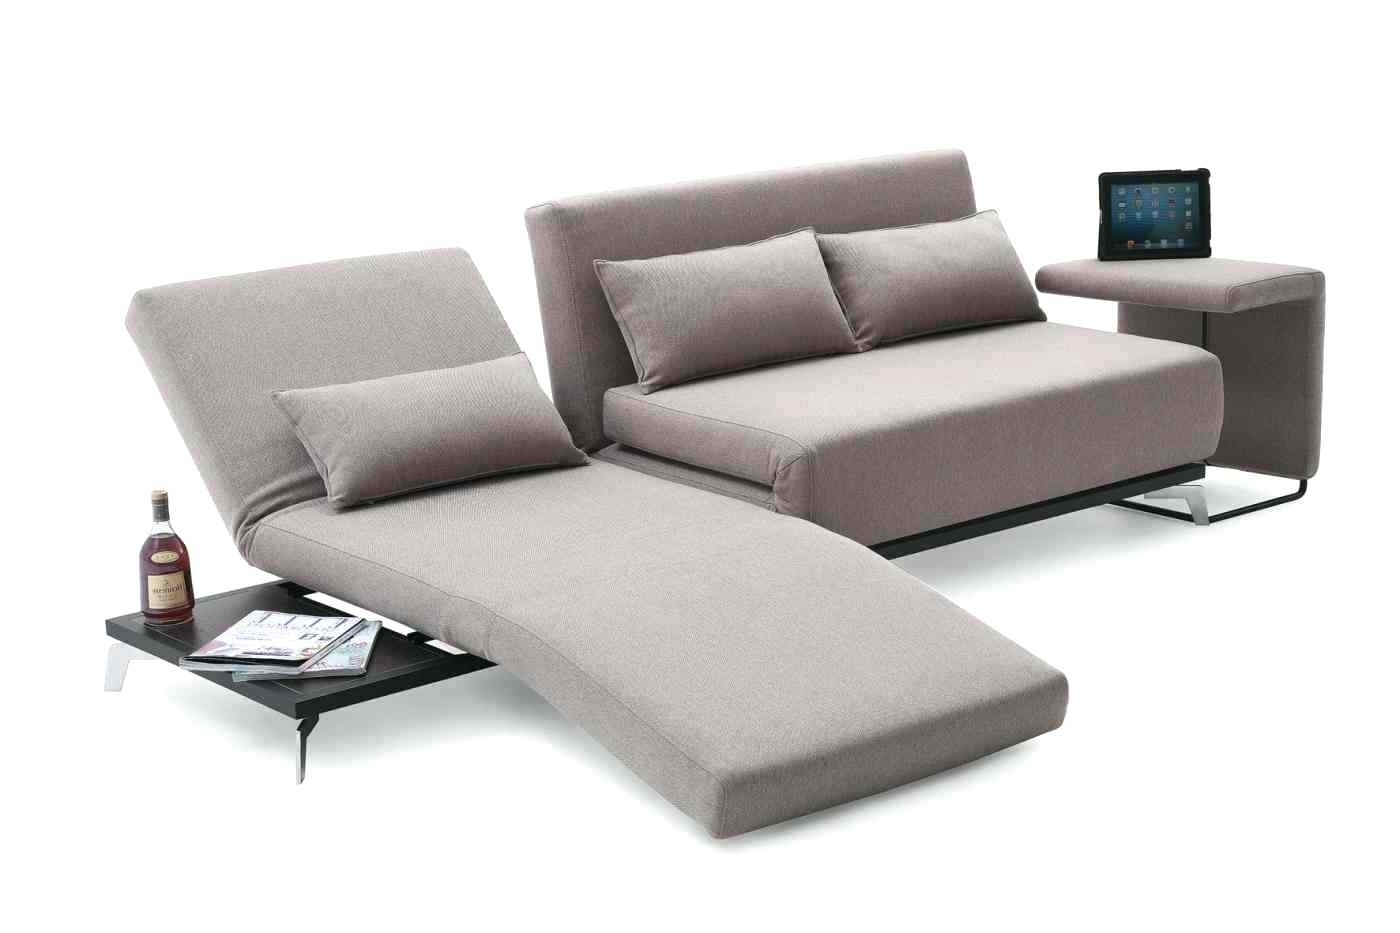 Mini Sofa – Ristovski Pertaining To Popular Mini Sofas (View 19 of 20)